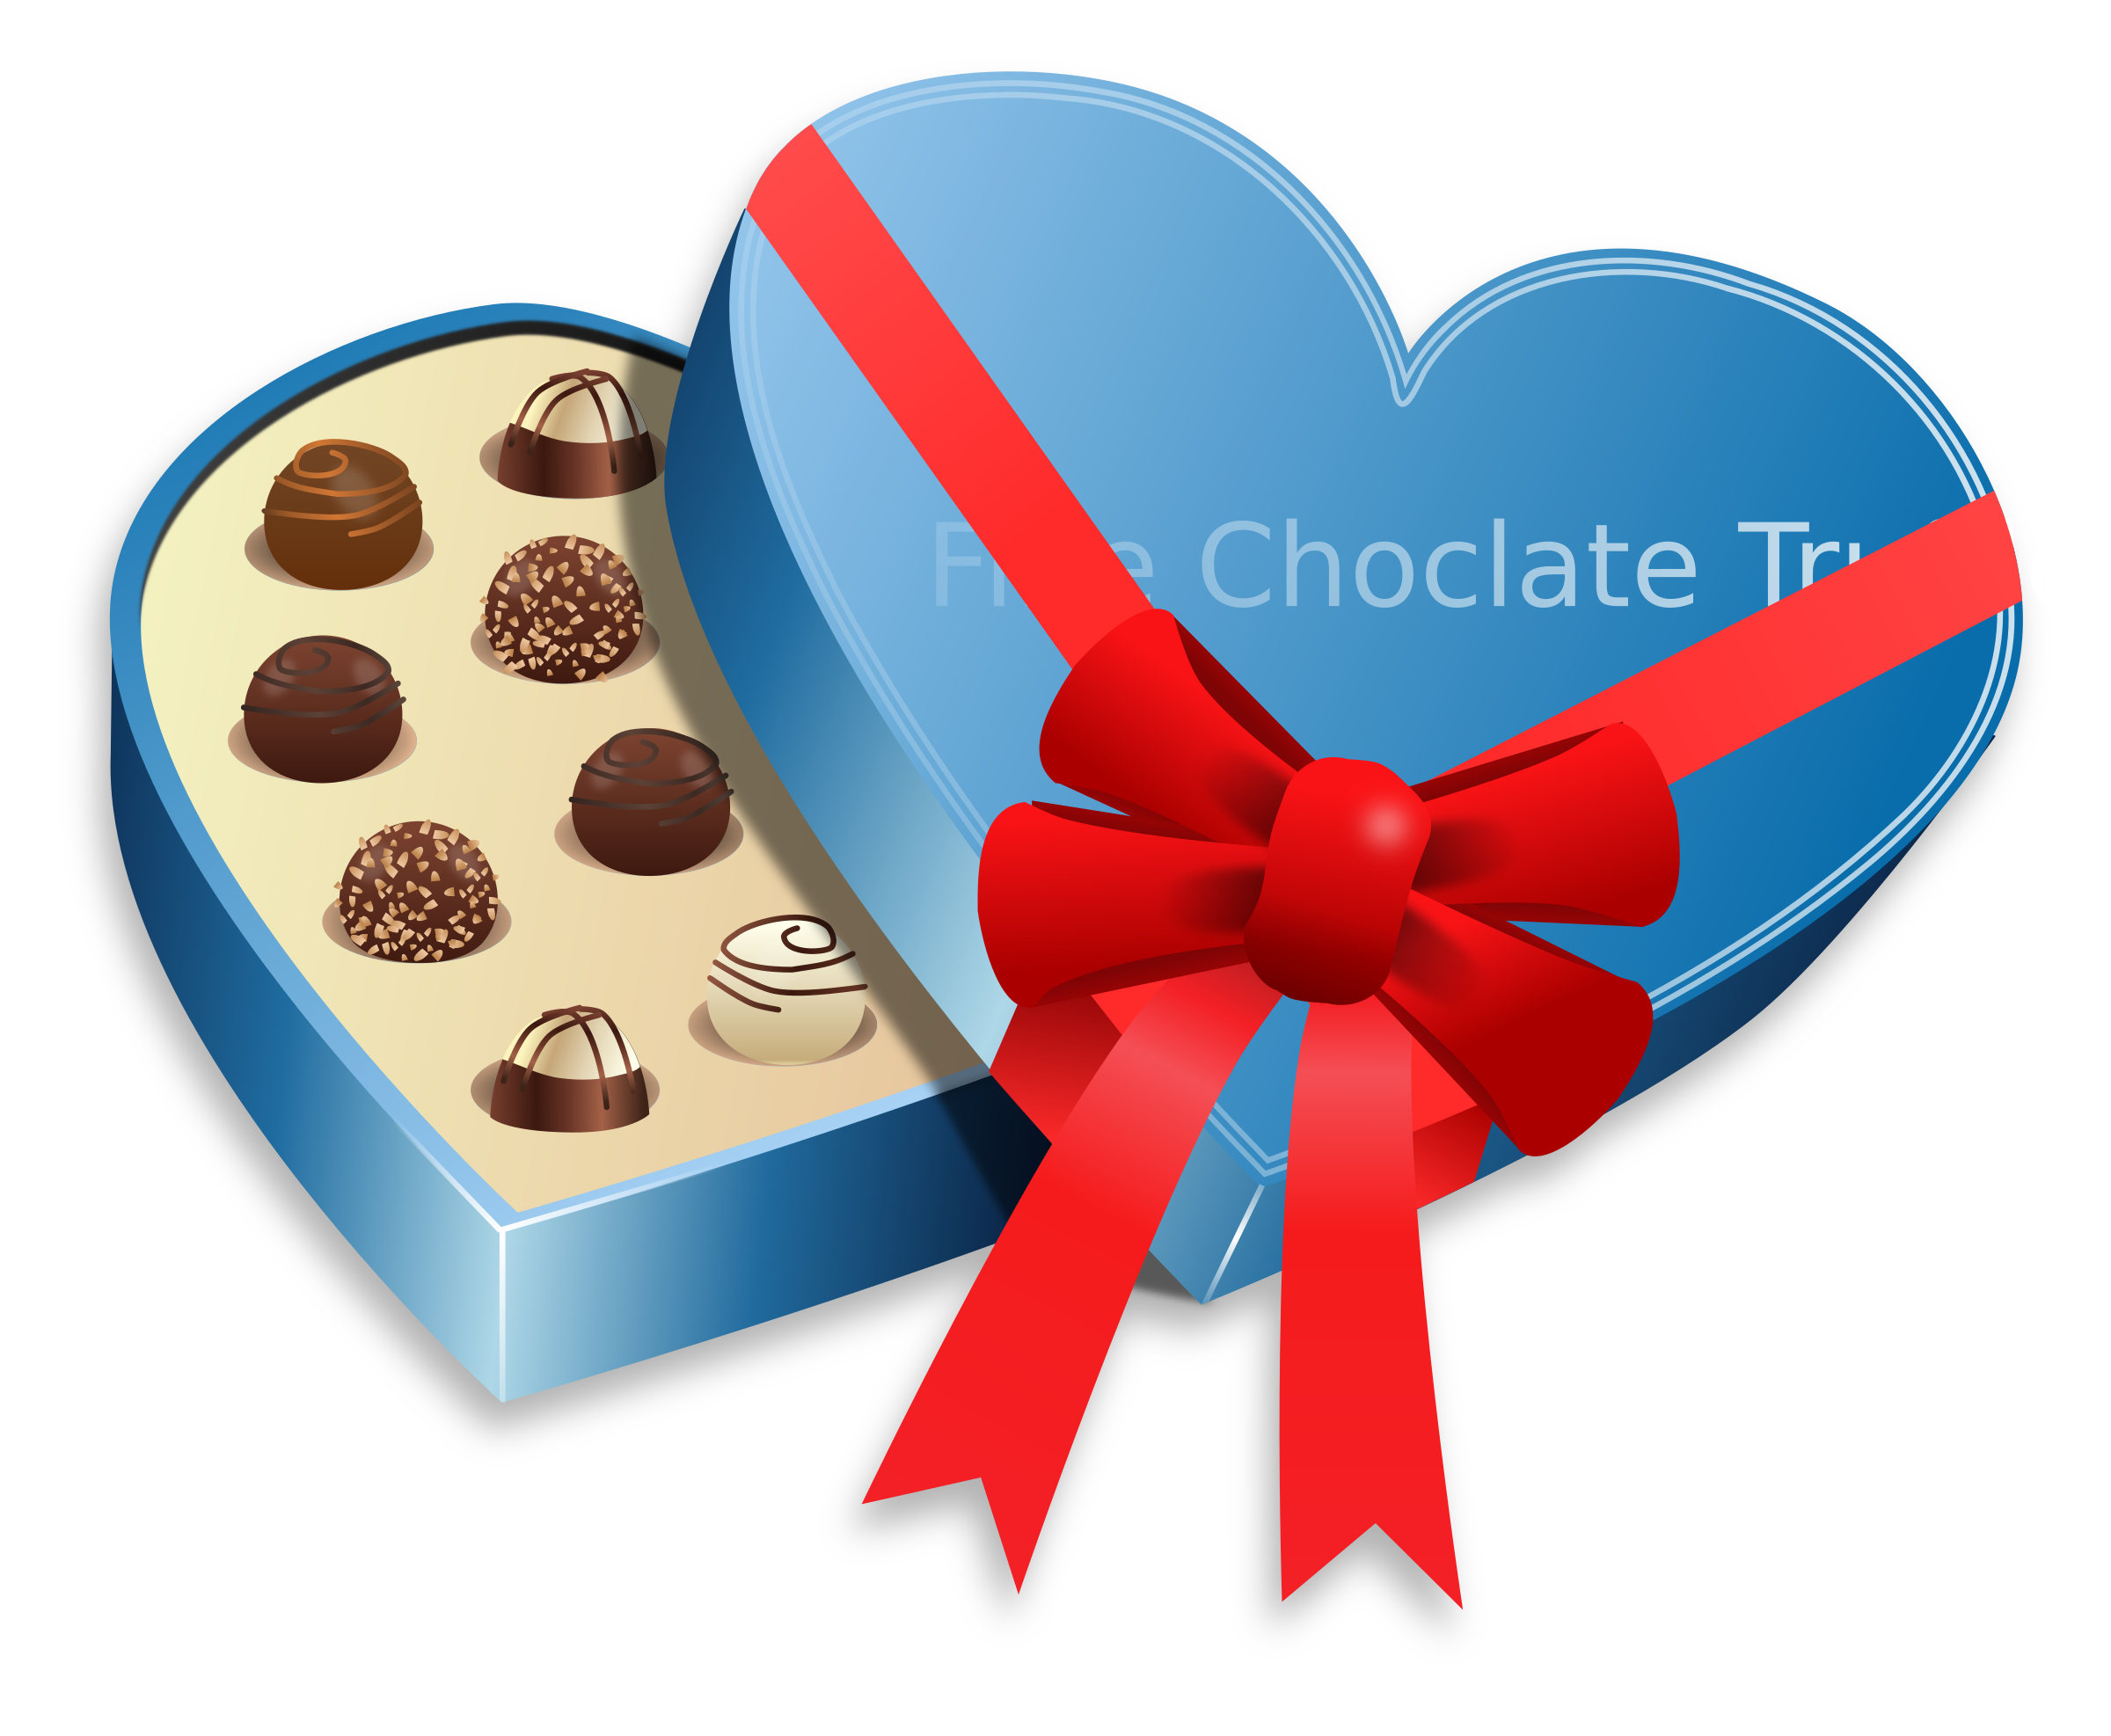 Heart box of chocolates clipart graphic transparent download Clipart - Valentines Day - Love Choclate graphic transparent download